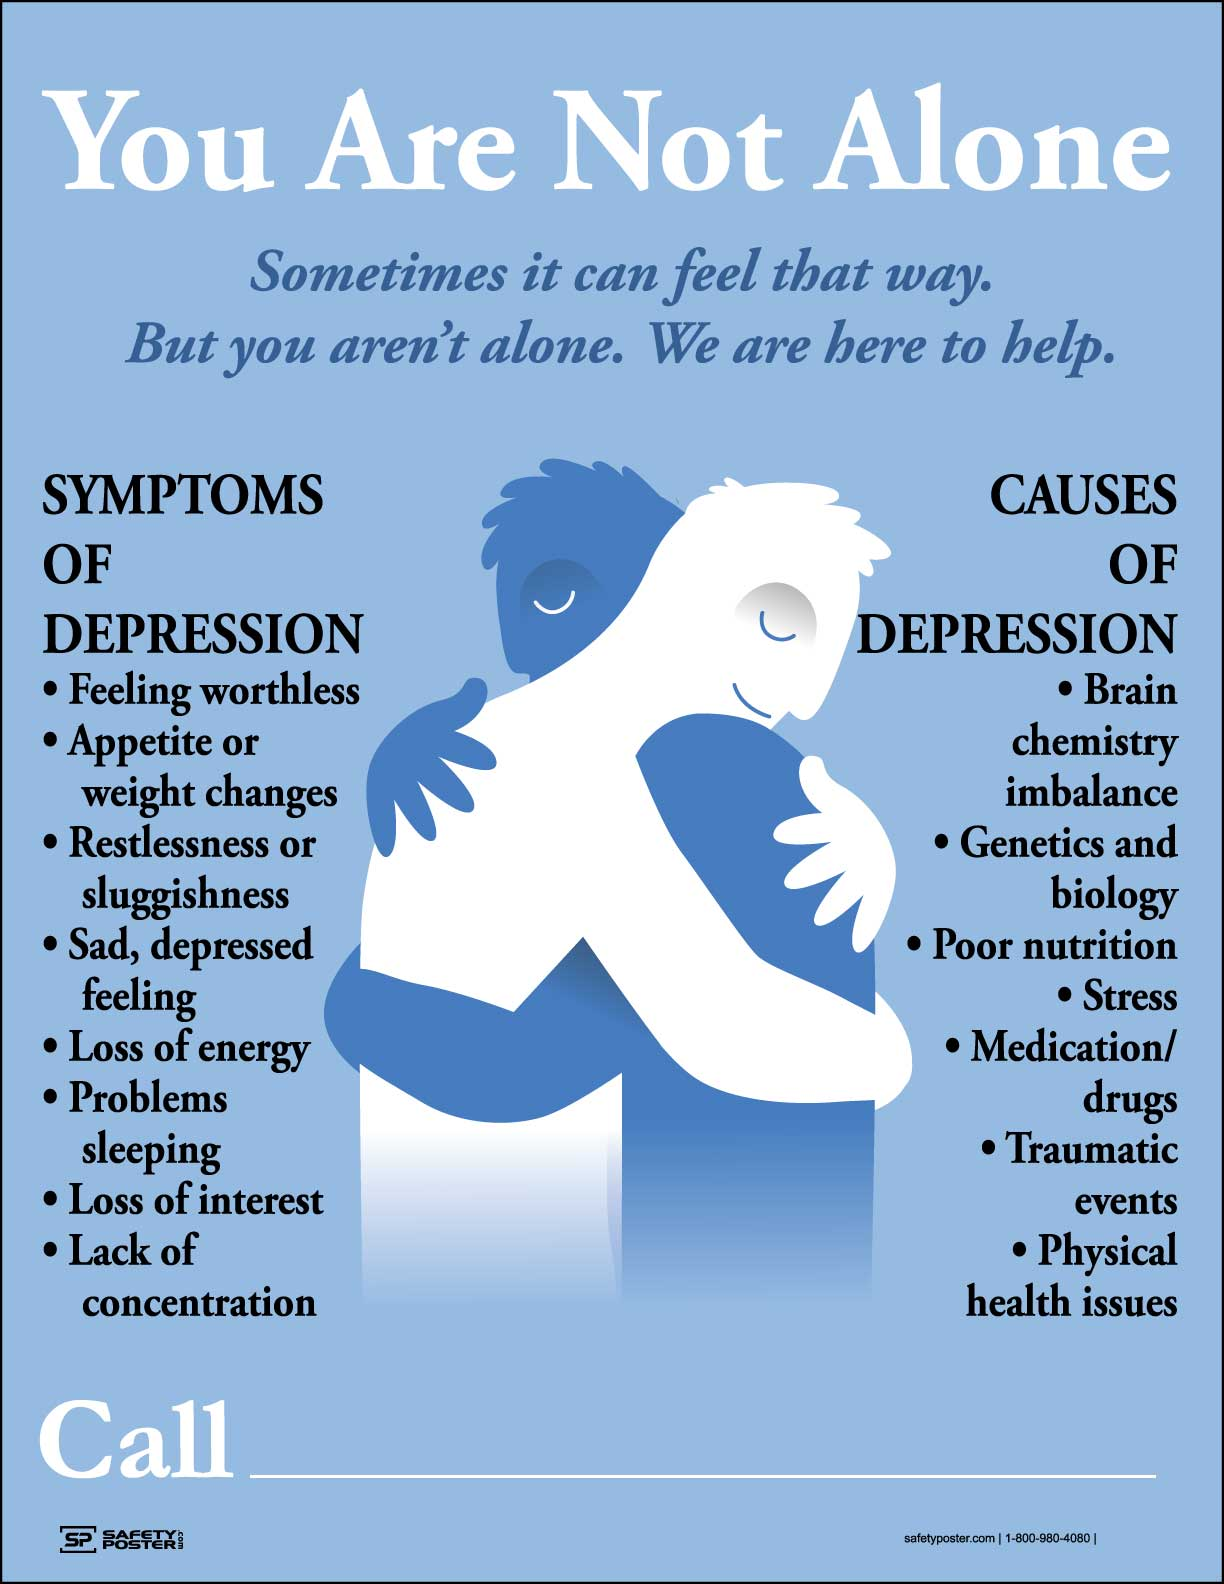 You Are Not Alone - Safety Poster